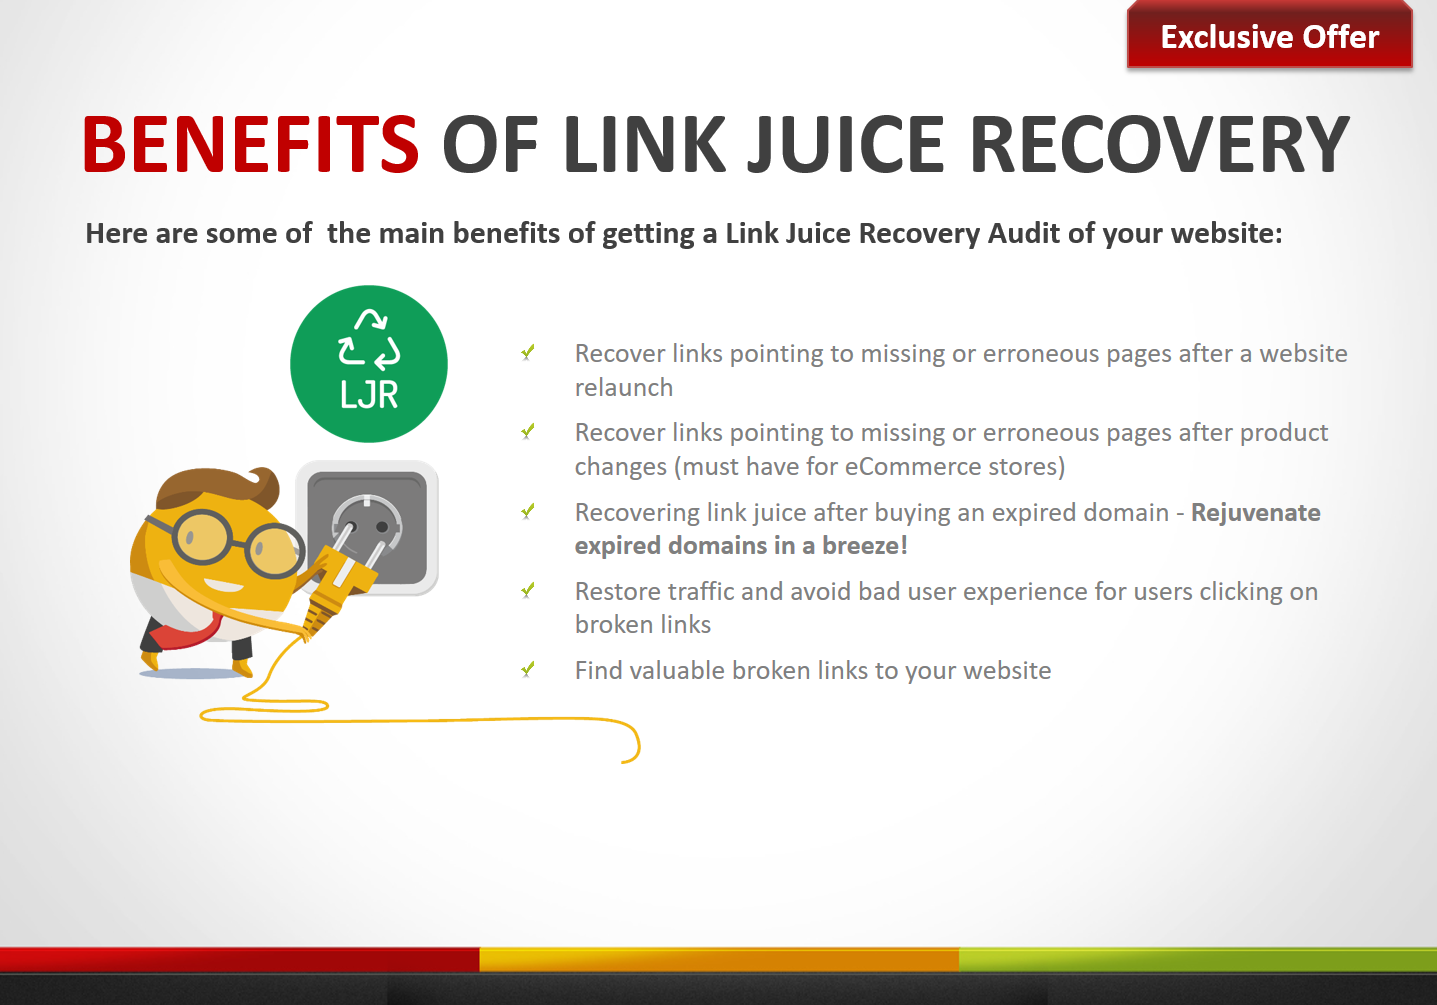 Link Juice Recovery Report - 404 Pages Leaking Link Juice